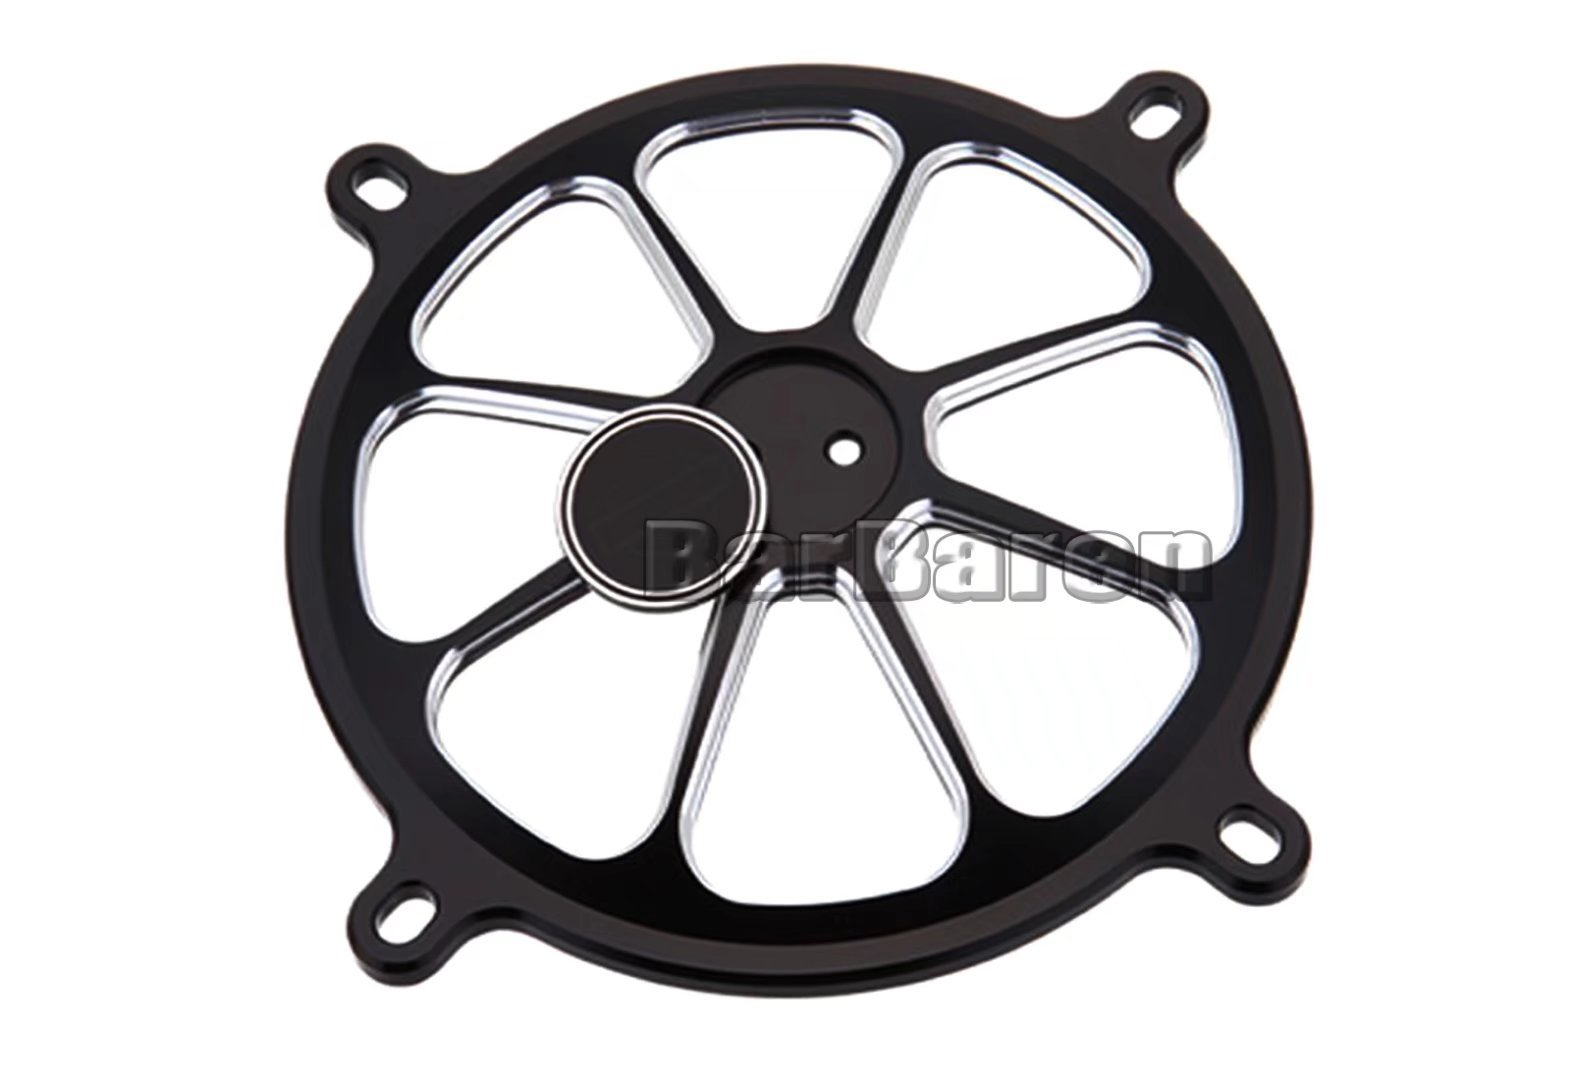 Motorcycle Audio Fairing Mount Speaker Grill Cover For Harley Davidson Touring Glide Trike